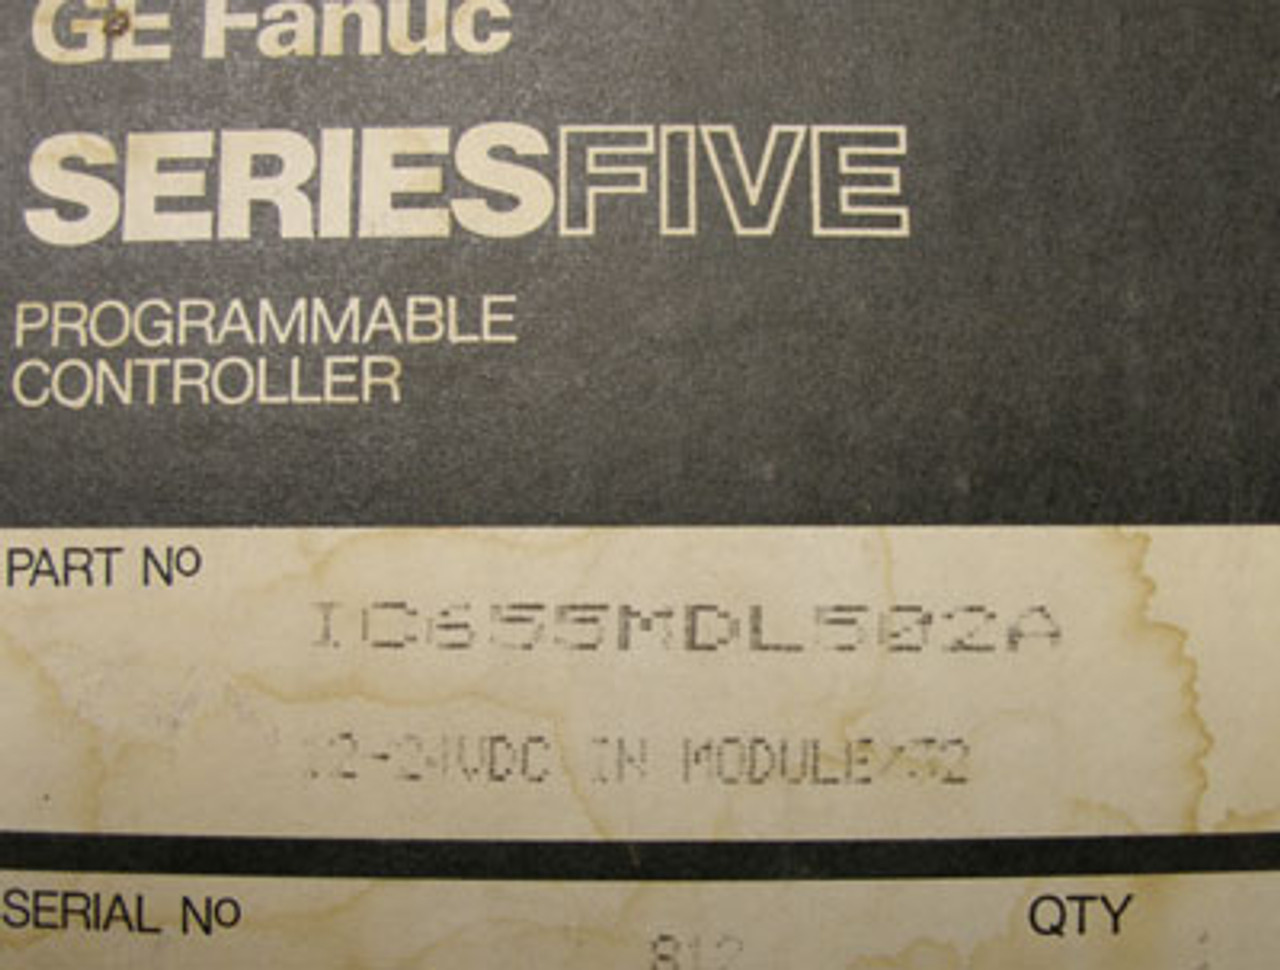 GE Fanuc Series Five Programmable Controller - New